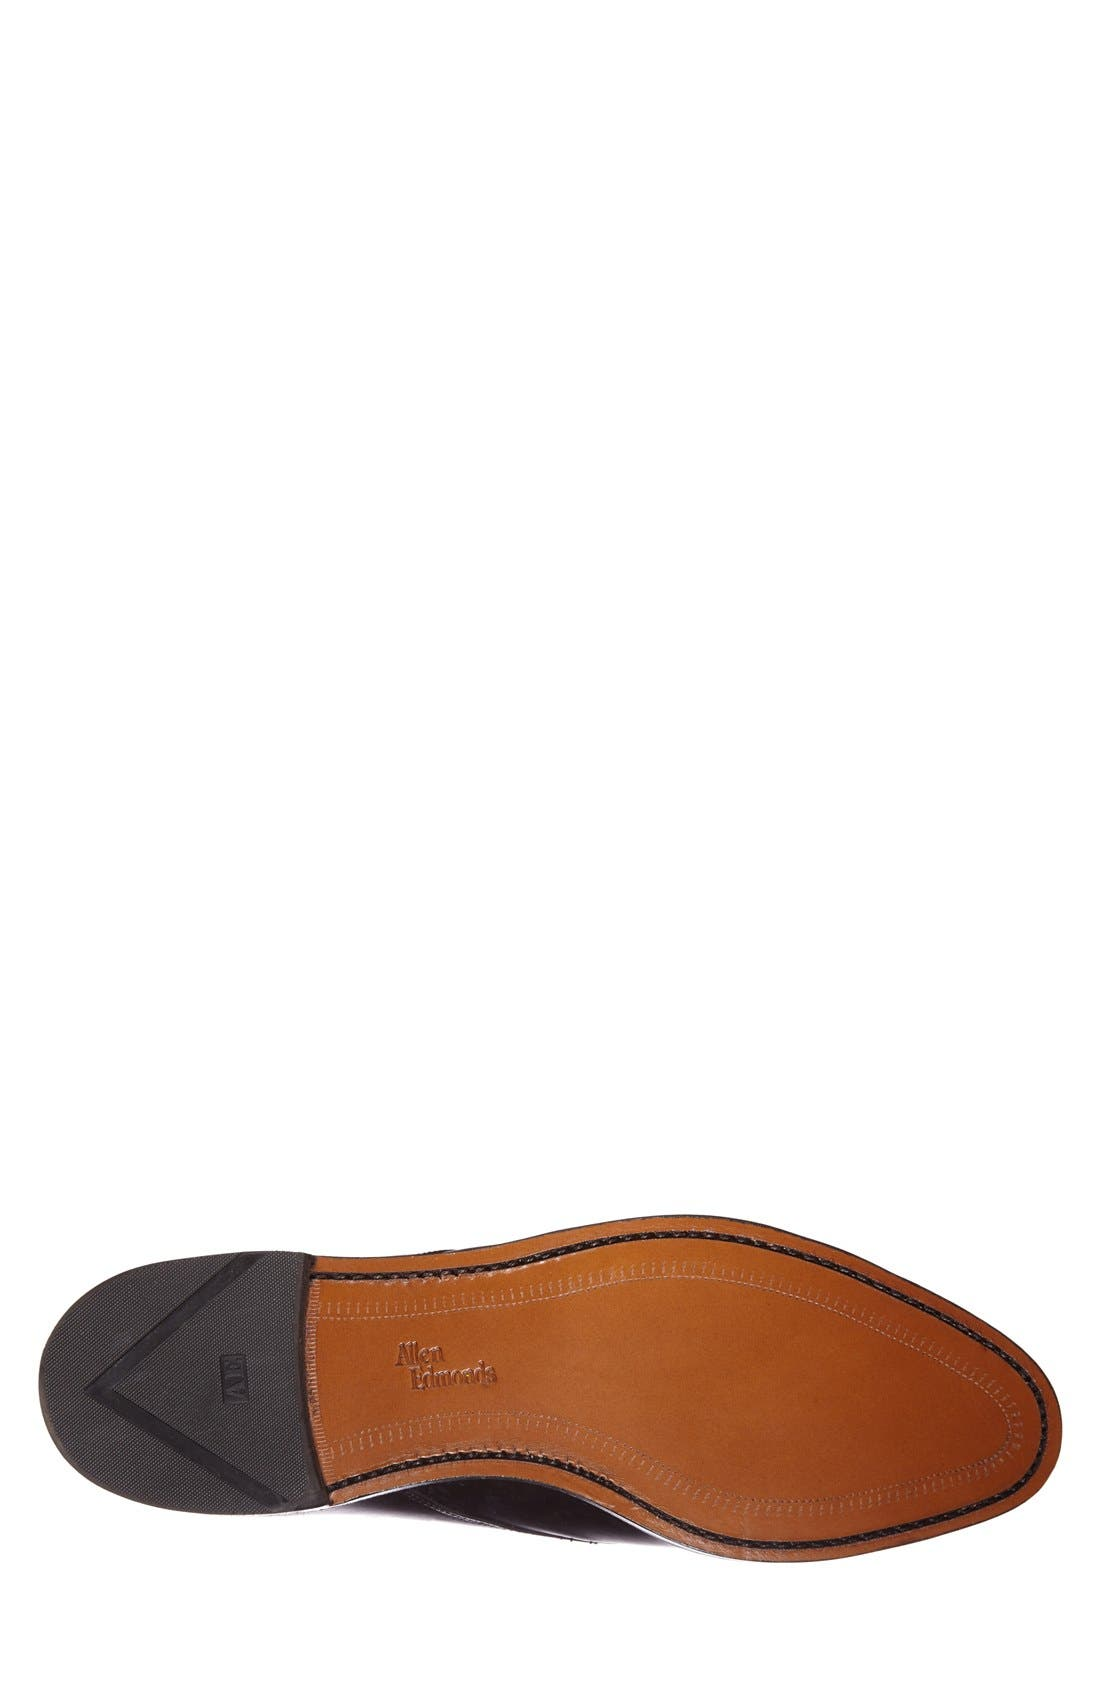 'Clifton' Blucher,                             Alternate thumbnail 4, color,                             Black